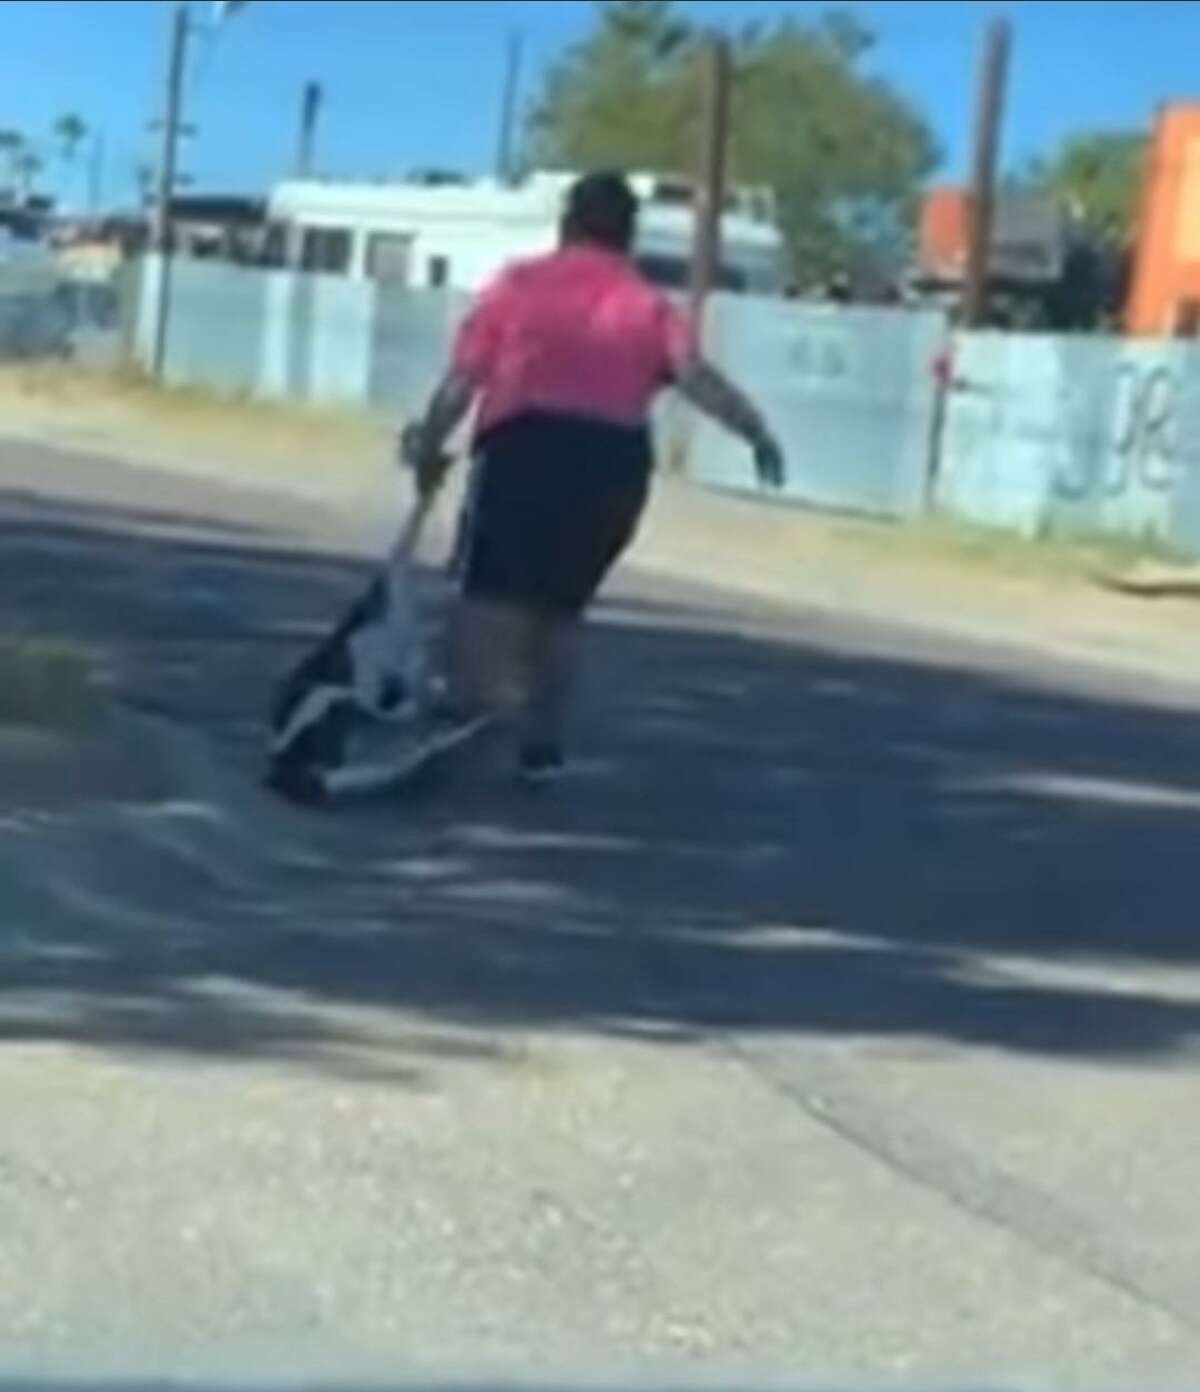 Laredo police arrested this juvenile video recorded dragging a dog. She was charged with animal cruelty.